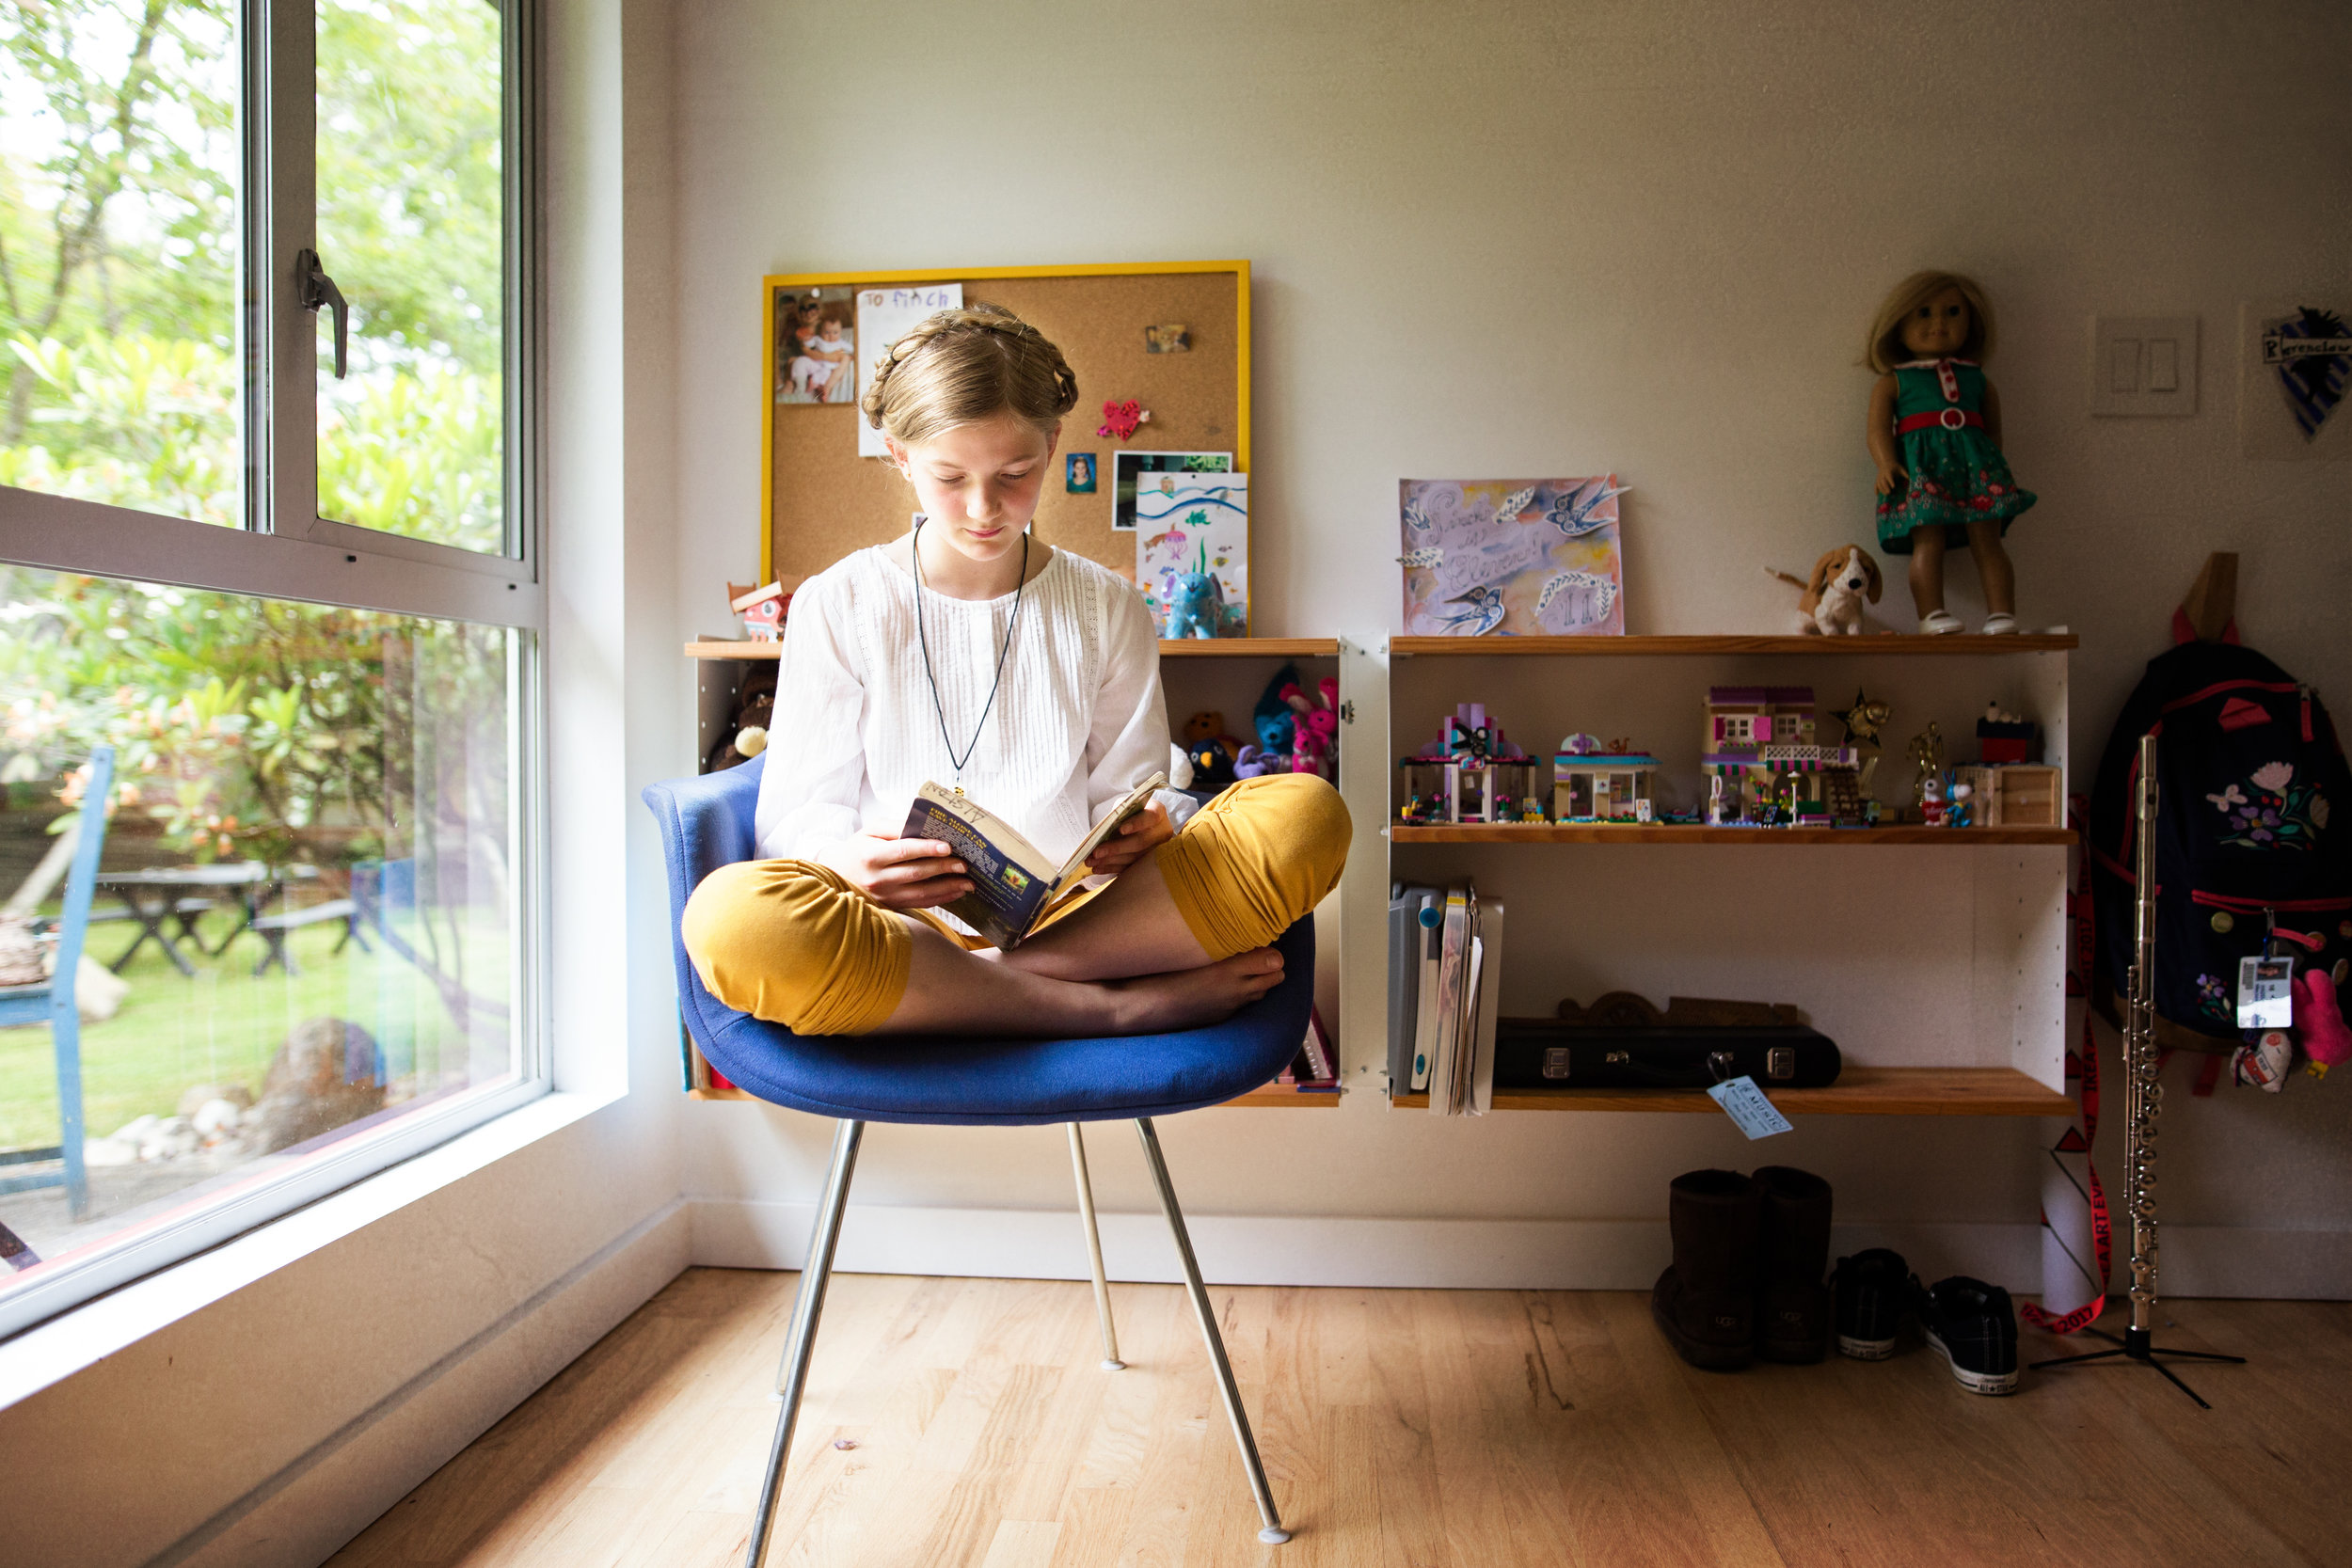 teenaged girl sitting on modern chair at window reading, family photography